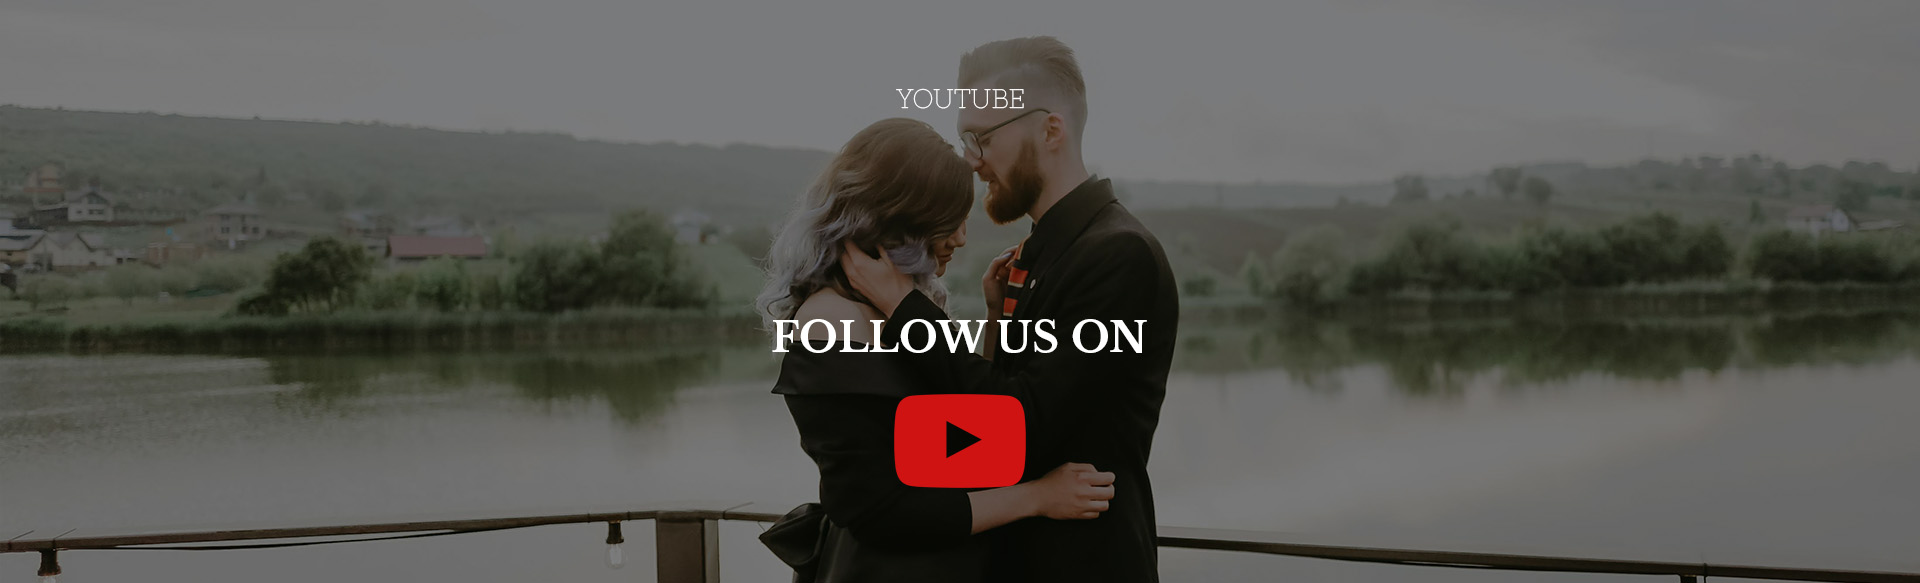 youngcreative.info | Cristina Bejan & Dan Filipciuc | follow us on youtube